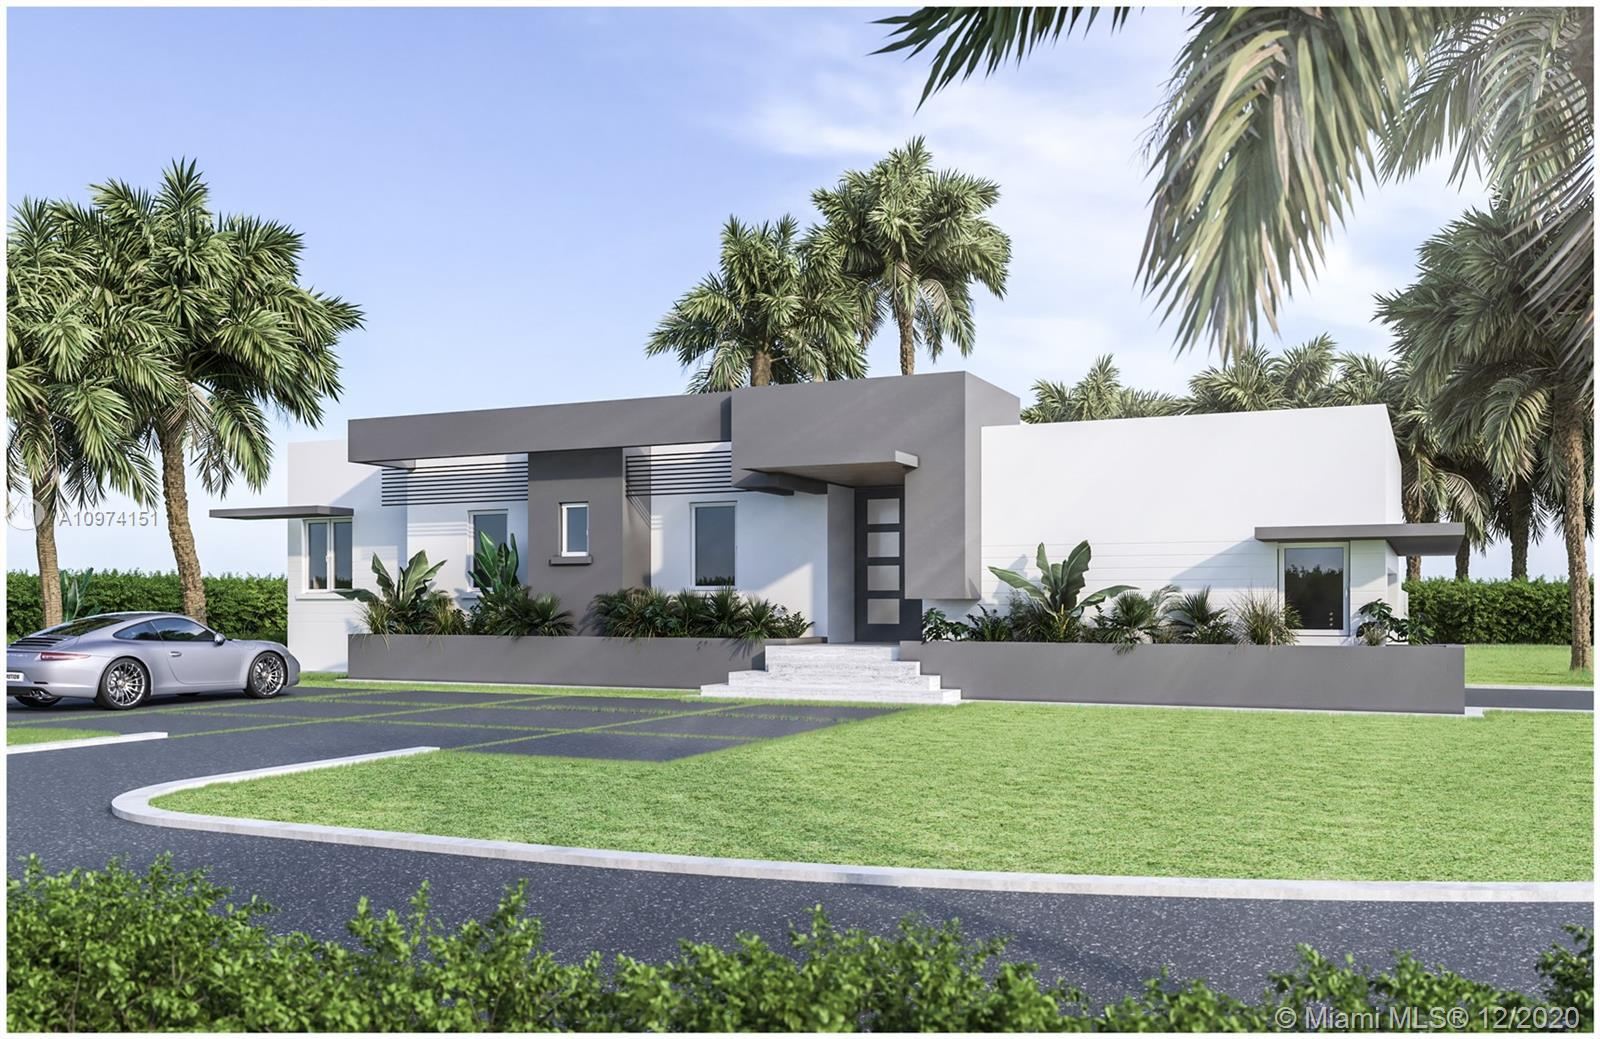 Miami Riches Real Estate presents exceptional new residence in exclusive Miami Shores, on a 11,566 s